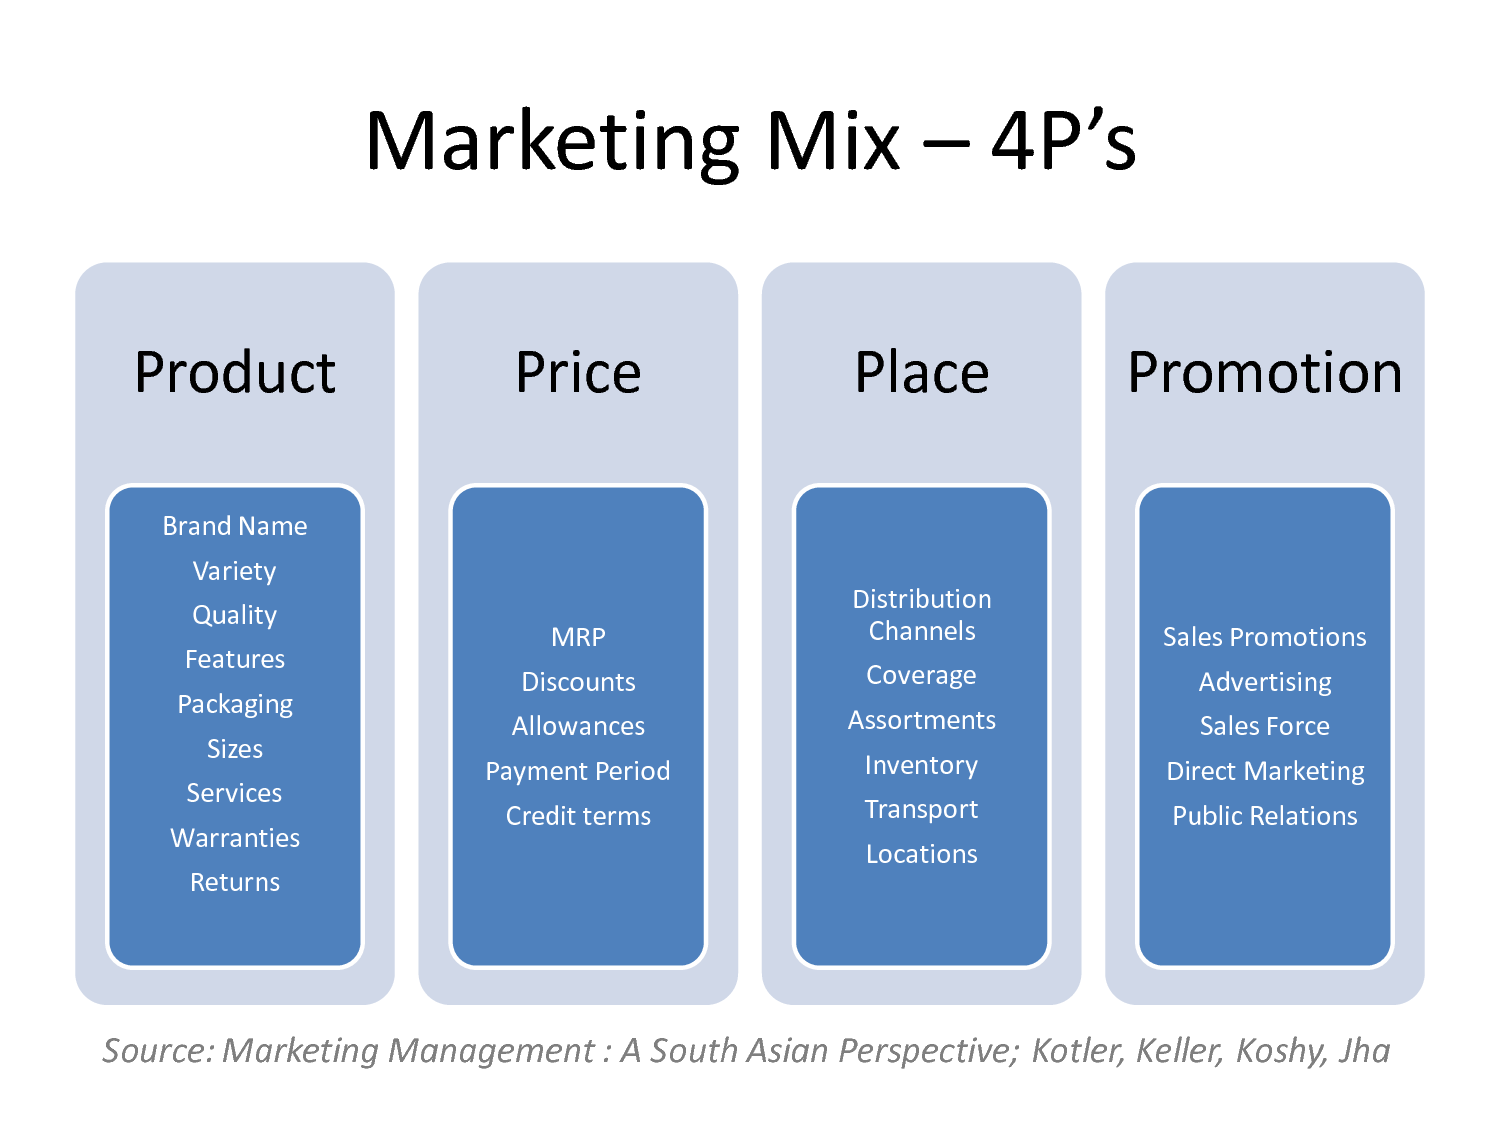 marketing mix paper The marketing mix, which focuses on product, price, placement, and promotion, create an effective marketing plan.